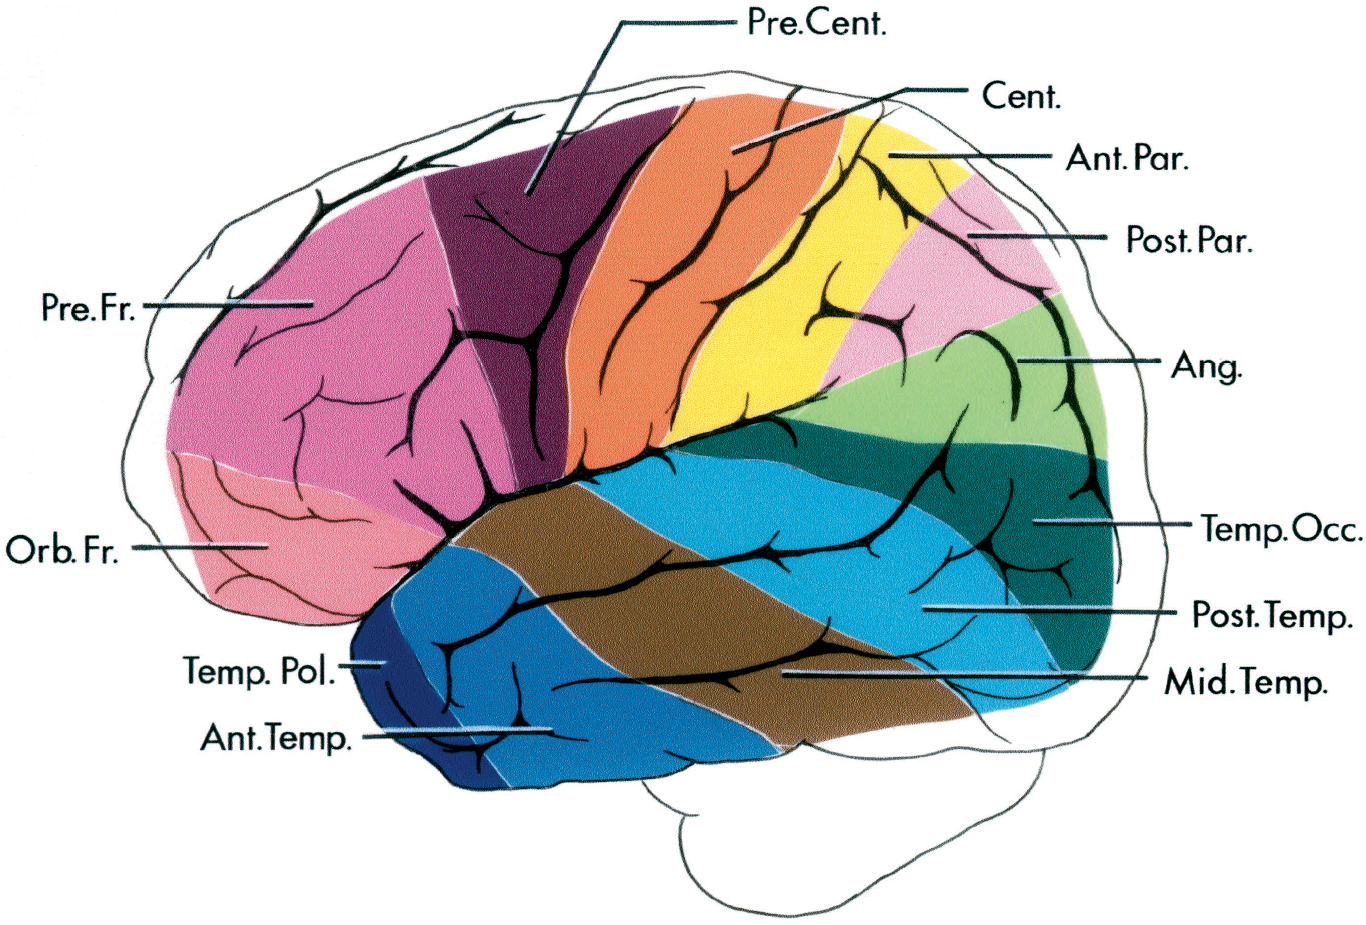 FIGURE 2.17. Classification of the cortical areas used in this study The territory of the middle cerebral artery is divided into 12 areas: orbitofrontal, prefrontal, precentral, central, anterior parietal, posterior parietal, angular, temporo-occipital, posterior temporal, middle temporal, anterior temporal, and temporopolar. Ang., angular; Ant., anterior; Cent., central; Mid., middle; Orb.Fr., orbitofrontal; Par., parietal; Post., posterior; Pre.Cent., precentral; Pre.Fr., prefrontal; Temp., temporal; Temp. Occ., temporo-occipital; Temp. Pol., temporopolar. (From, Gibo H, Carver CC, Rhoton AL Jr, Lenkey C, Mitchell RJ: Microsurgical anatomy of the middle cerebral artery. J Neurosurg 54:151–169, 1981 [14].)